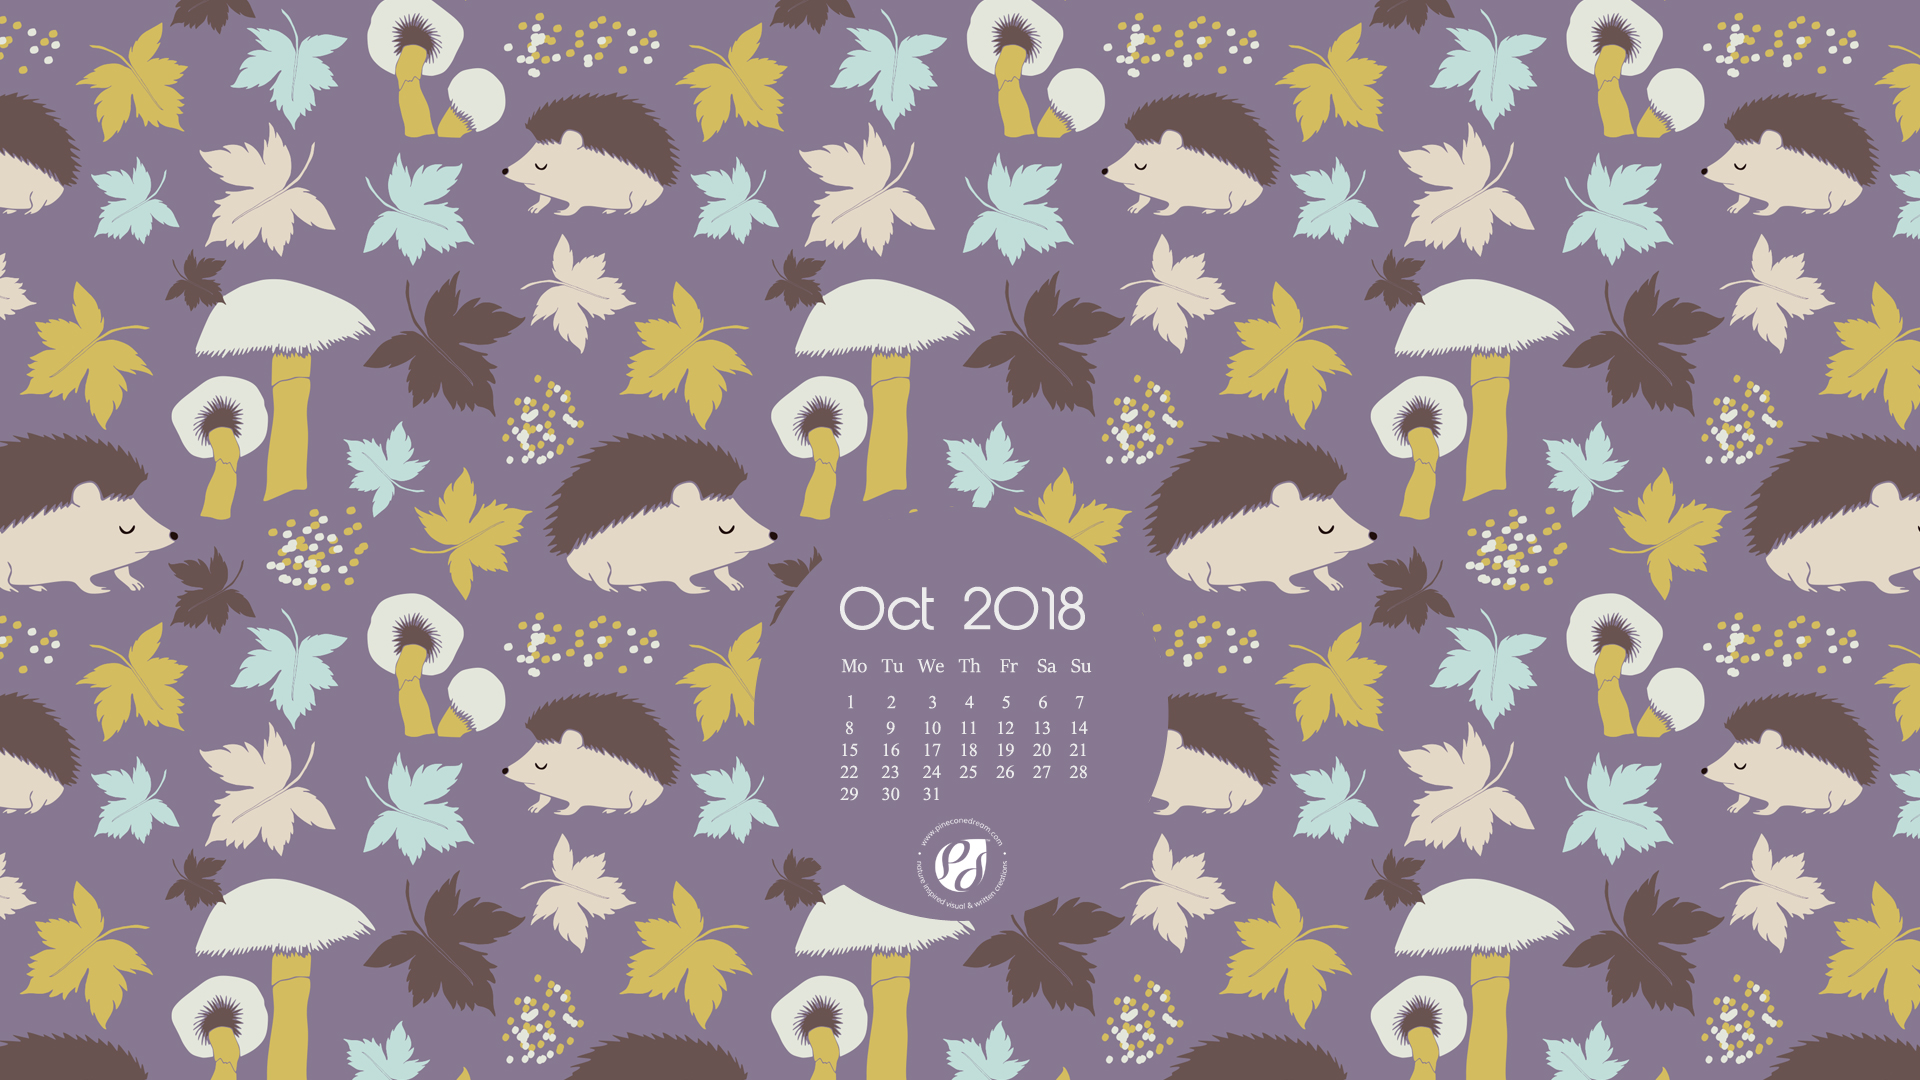 October 2018 free desktop calendar wallpaper